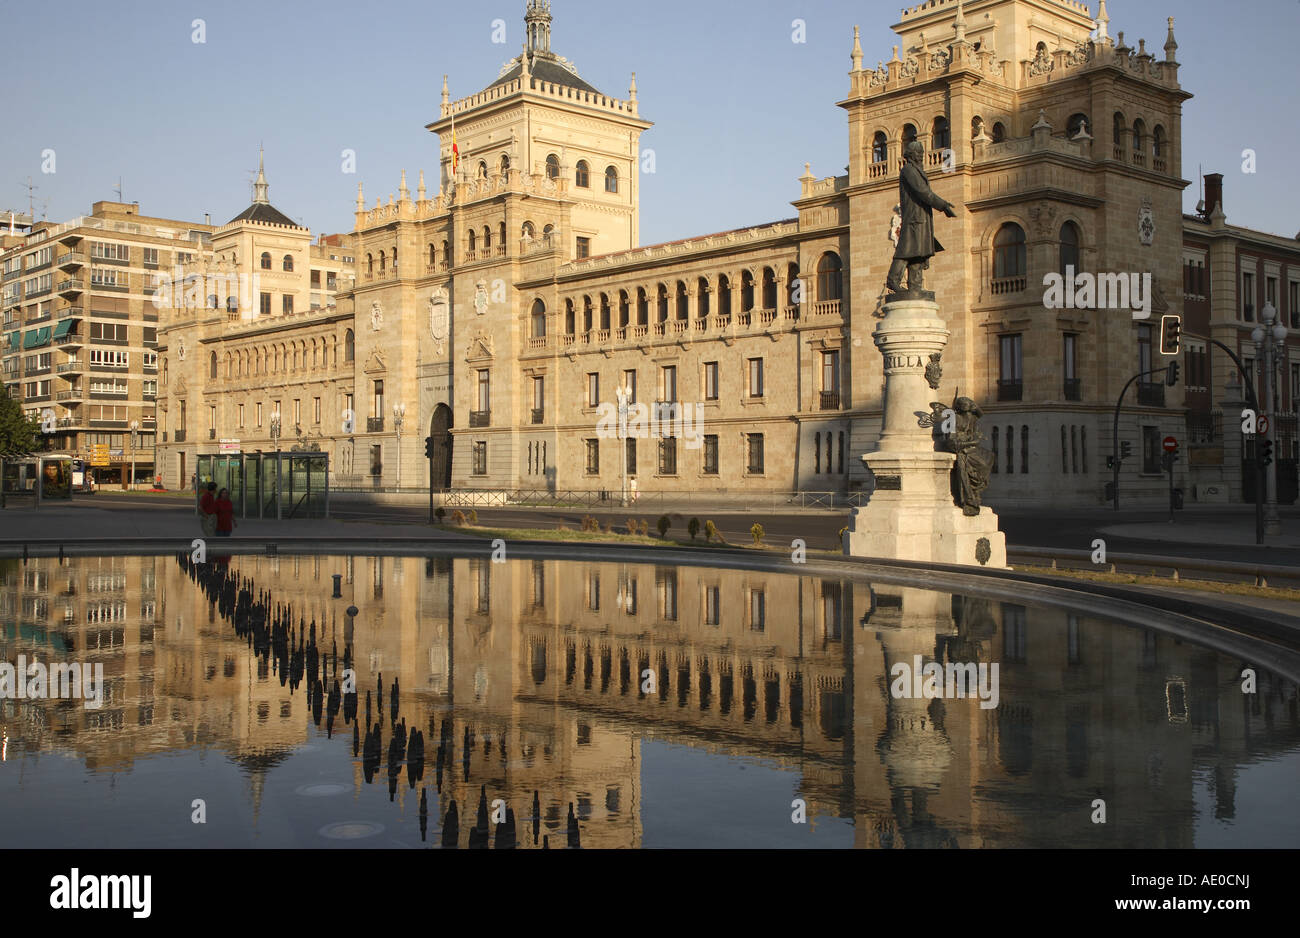 Academia de Caballeria in Plaza Zorrila Square, Valladolid, Castile and Leon, Spain - Stock Image